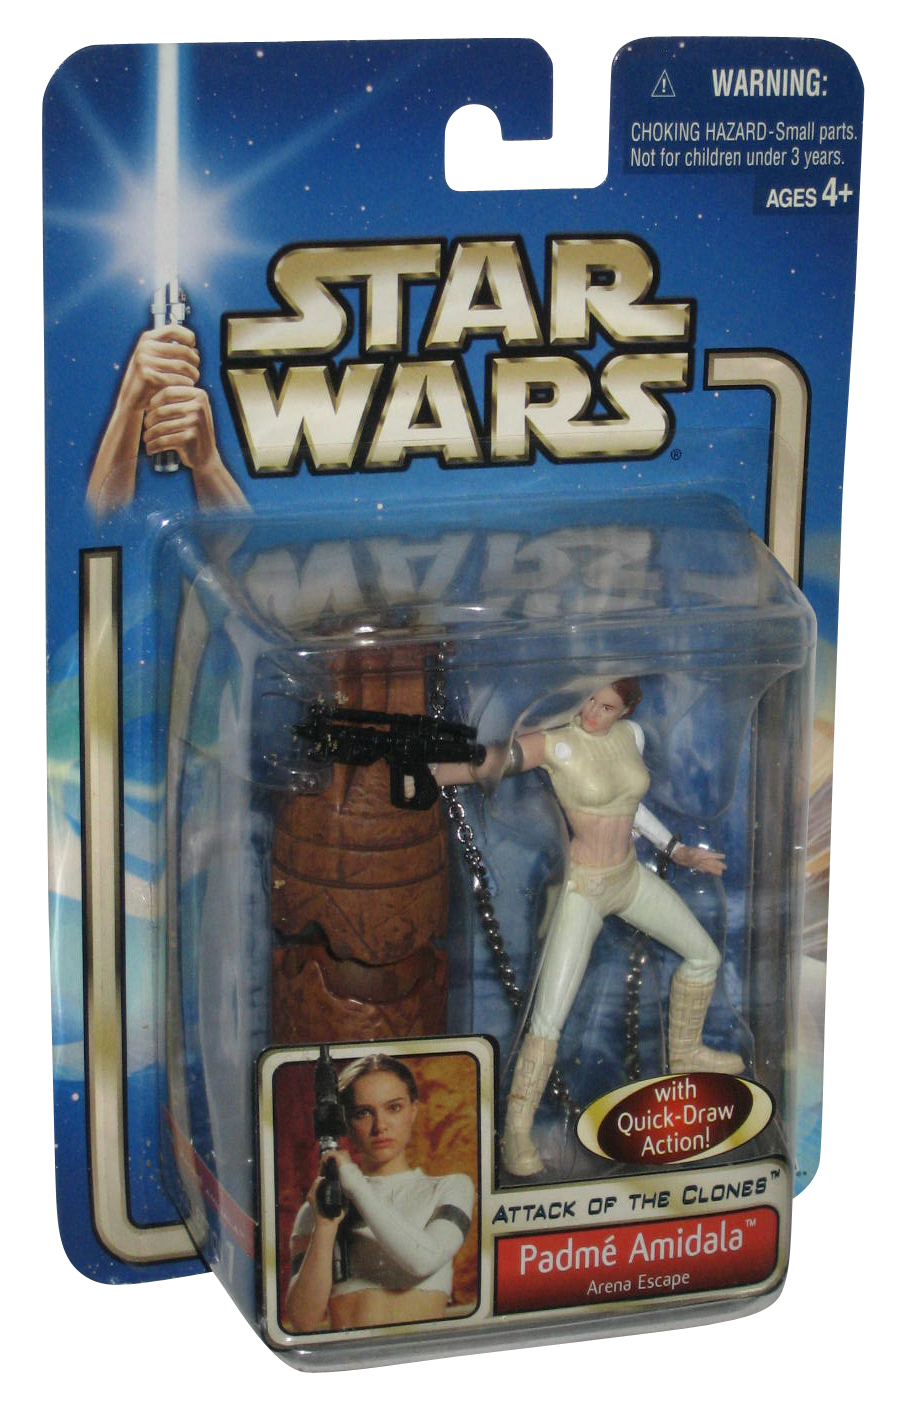 PADME AMIDALA ARENA ESCAPE star wars NEW attack of the clones ACTION FIGURE